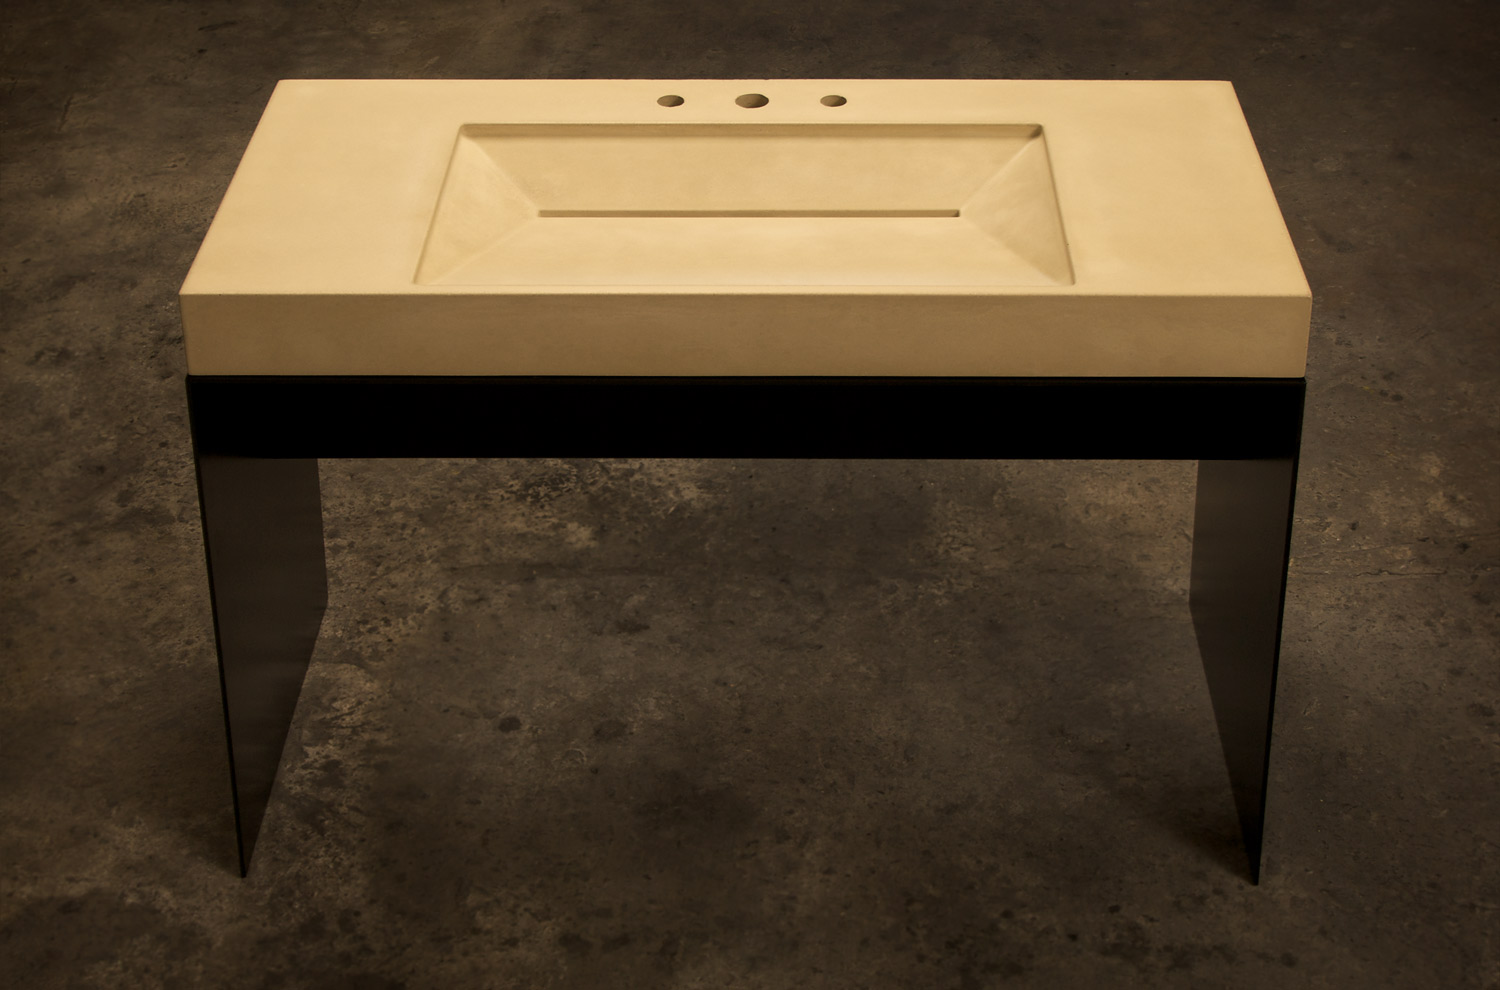 ADA Concrete Ramp Sink in beige concrete on a custom blackened steel sink base